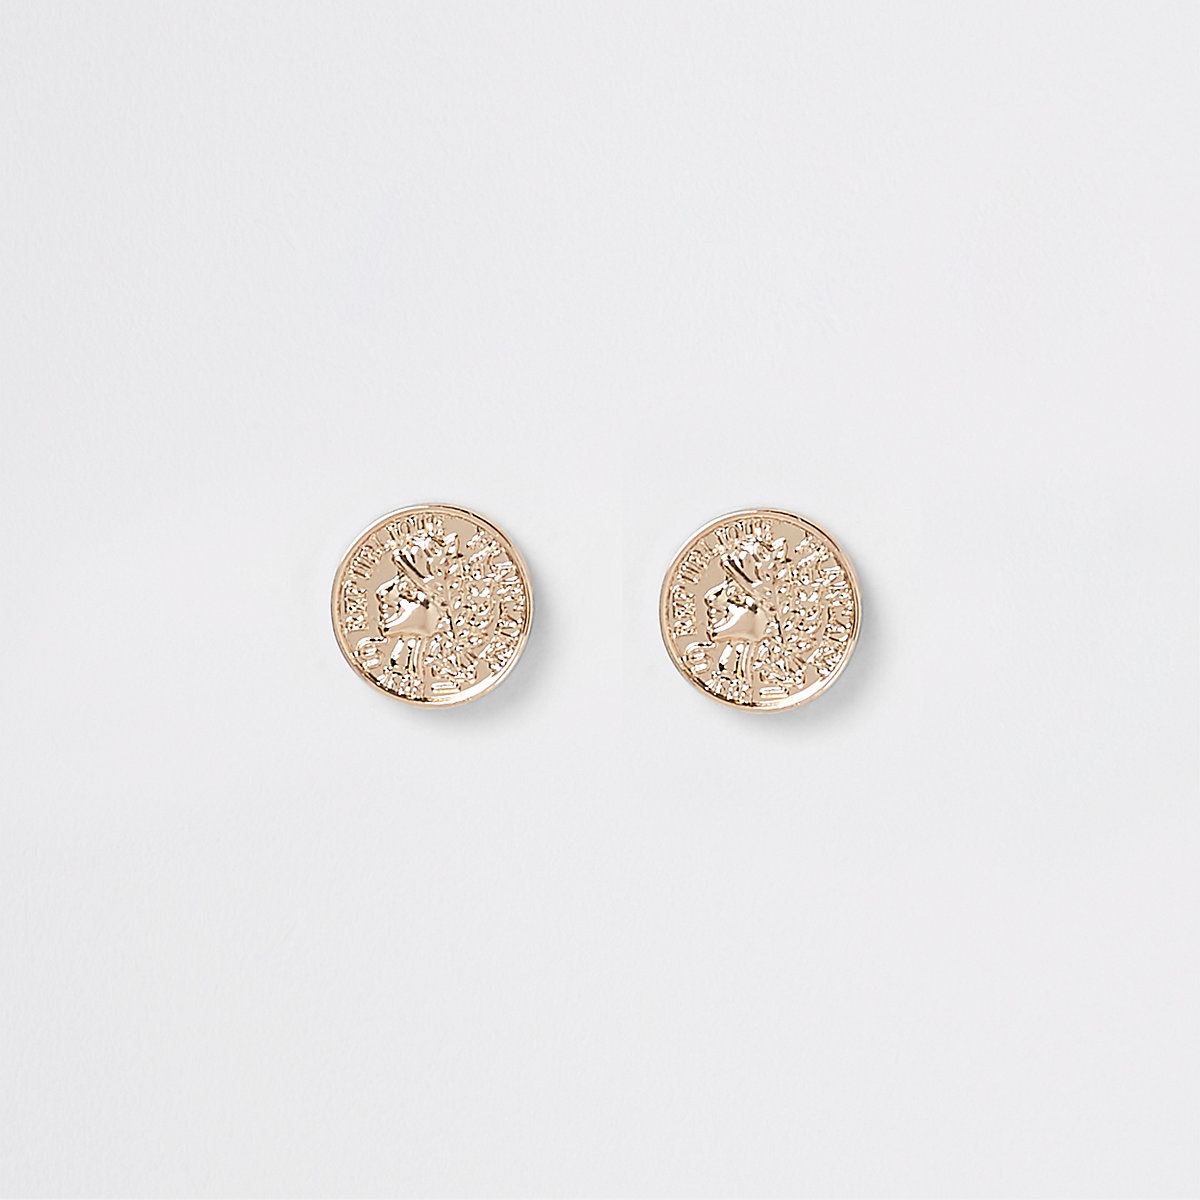 Gold color coin stud earrings